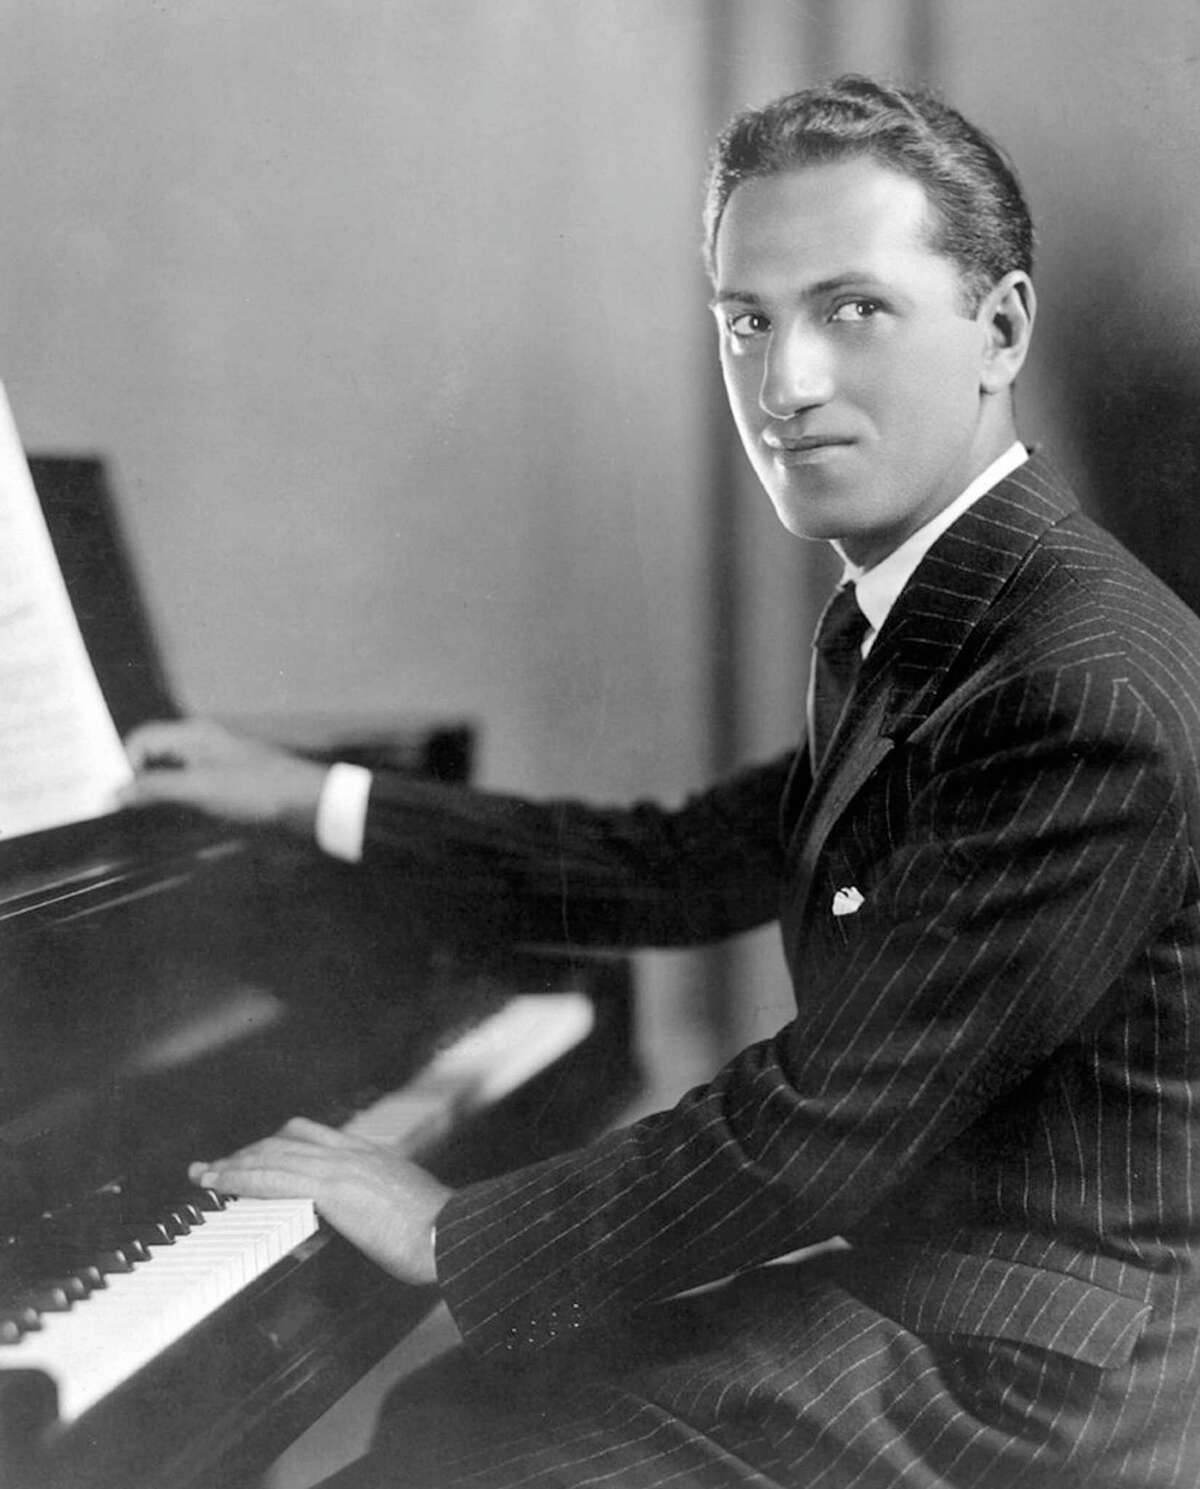 GERSHWIN PROGRAM: Fairfield University's Quick Center for the Arts will present pianist Orin Grossman, PhD, performing a tribute to one of the most influential composers in American history, George Gershwin (above) on Tuesday, Dec. 8, at 5 p.m. Fairfield faculty member Grossman has performed and lectured around the world. The event will take place in virtual format. Tickets are $20 and available at quickcenter.com.